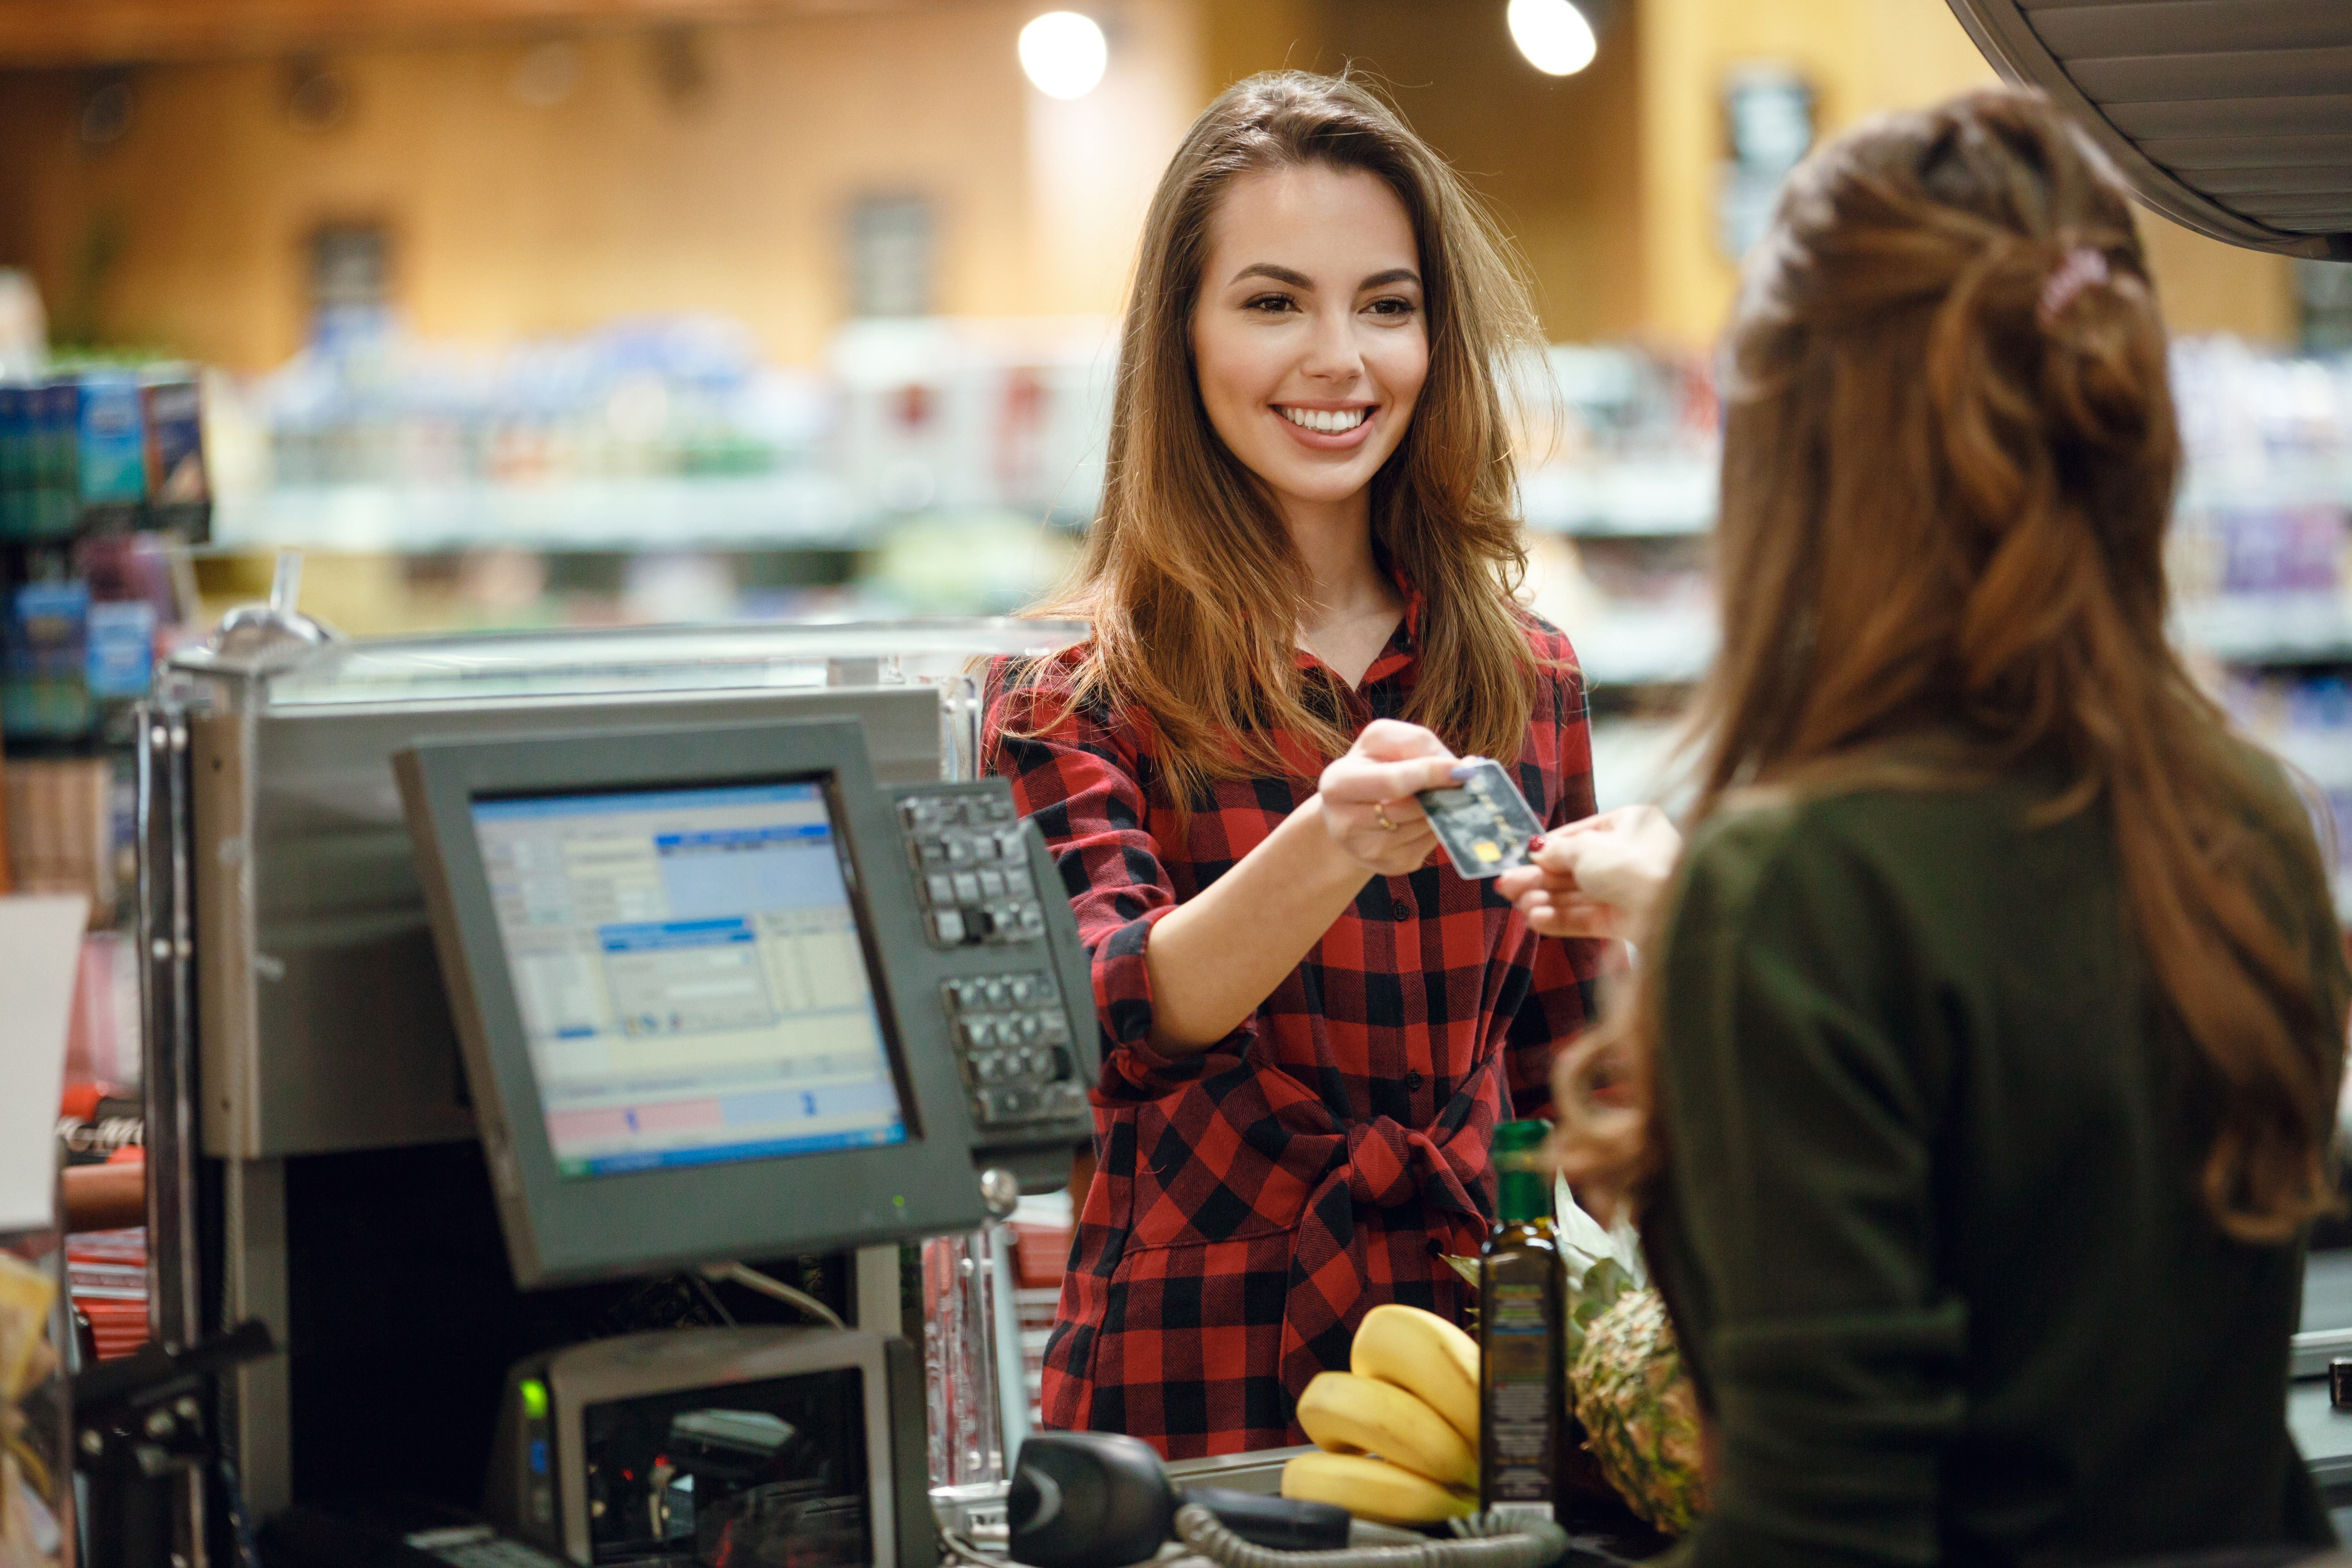 young woman pays for groceries with credit card